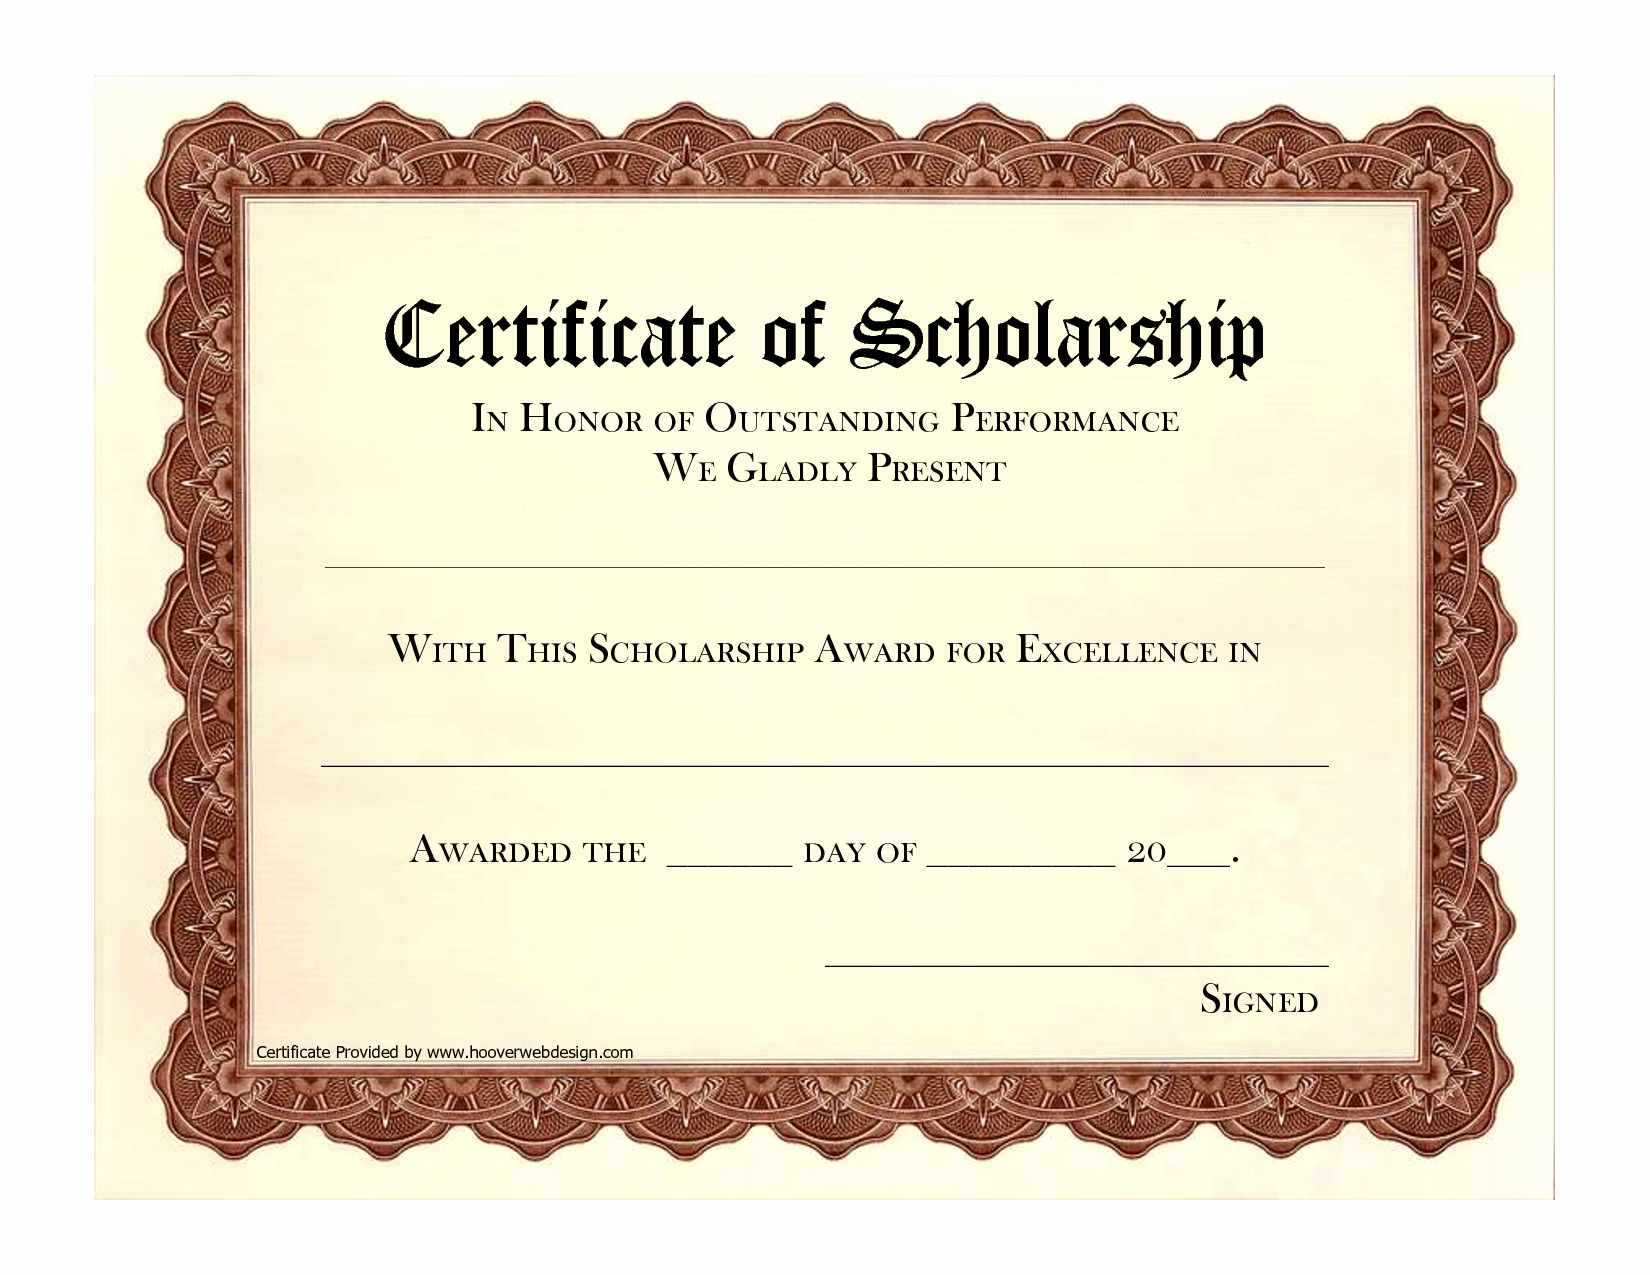 Scholarship Award Certificate Template Free Beautiful Award Certificate Template Free Scholarship Award